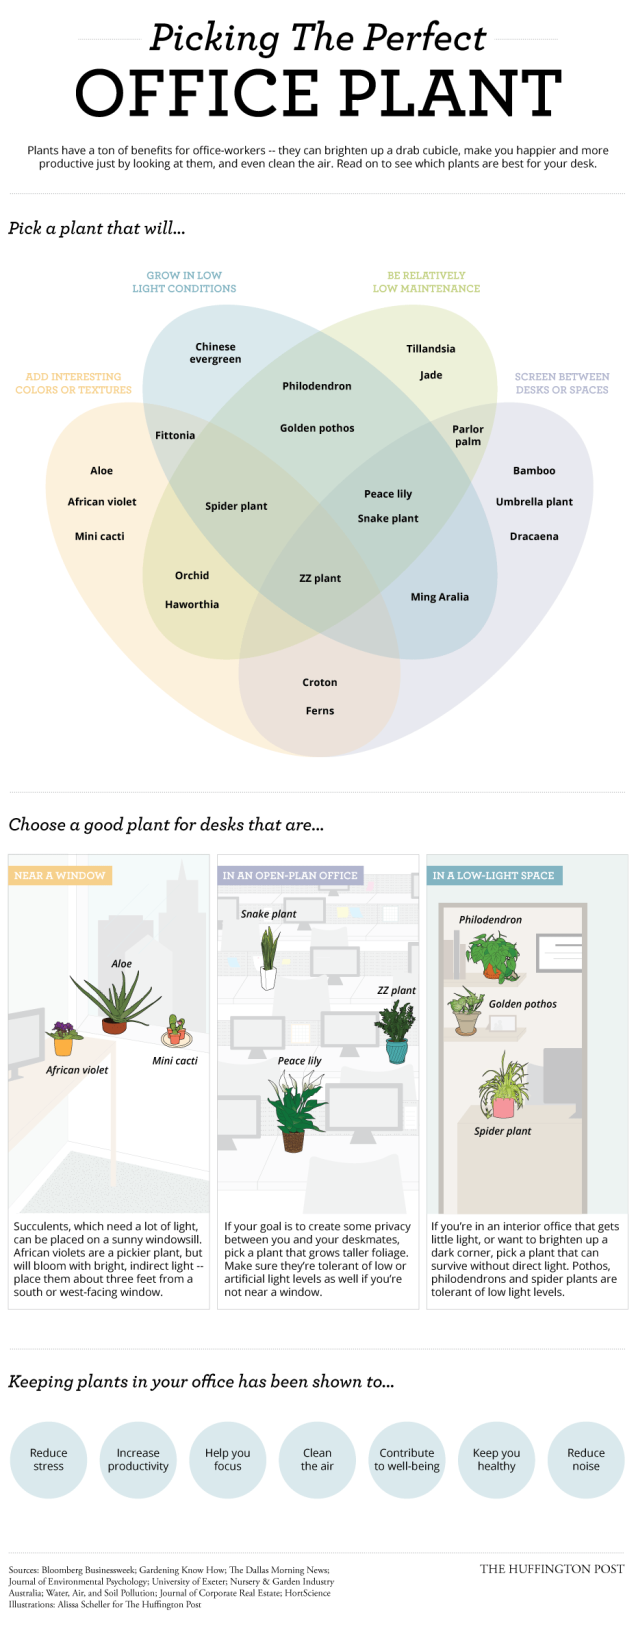 Picking the perfect office plant.